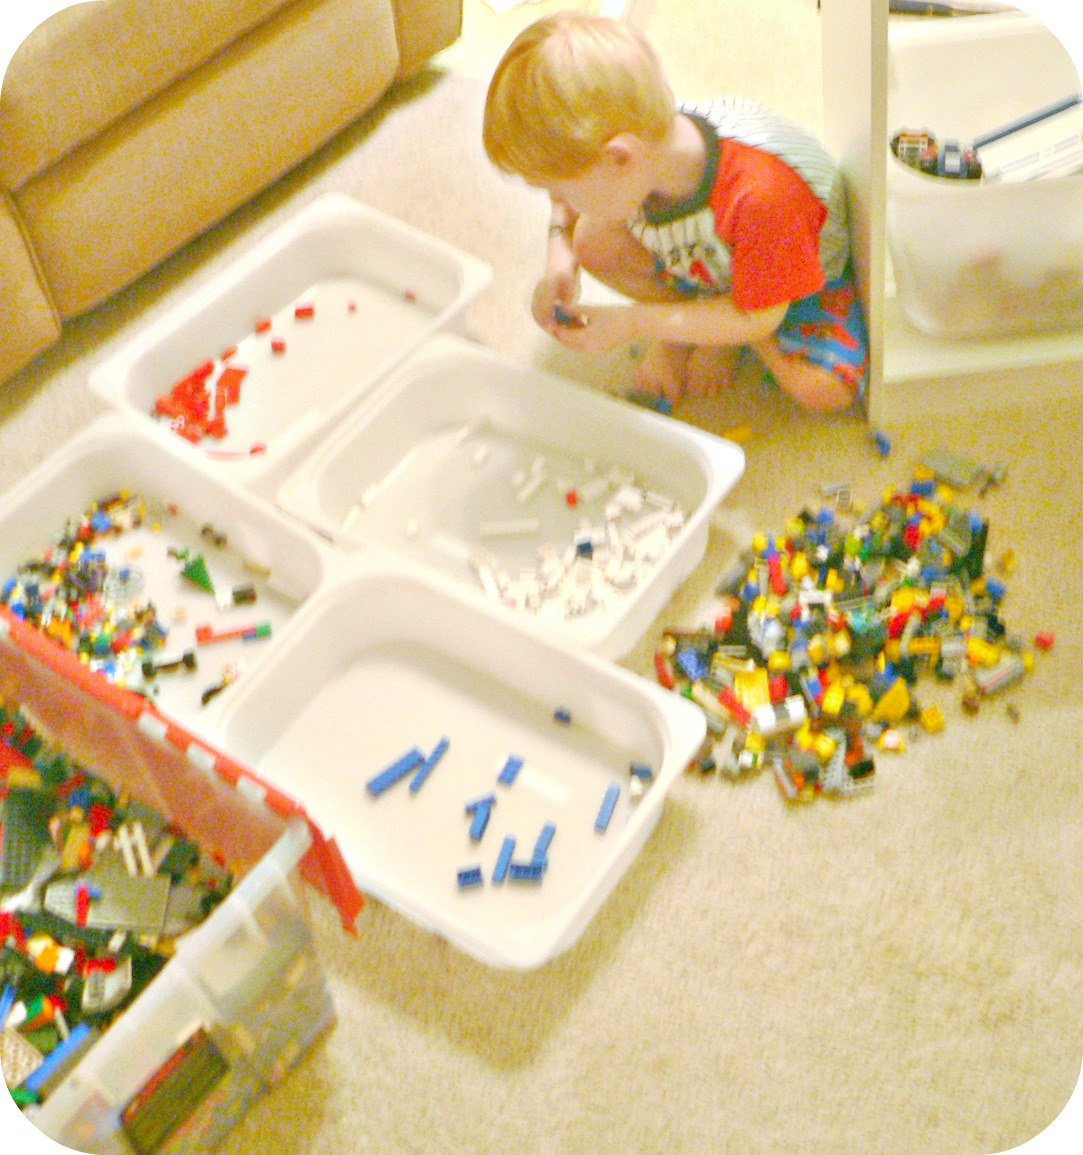 lego sorting The Ultimate Lego Storage